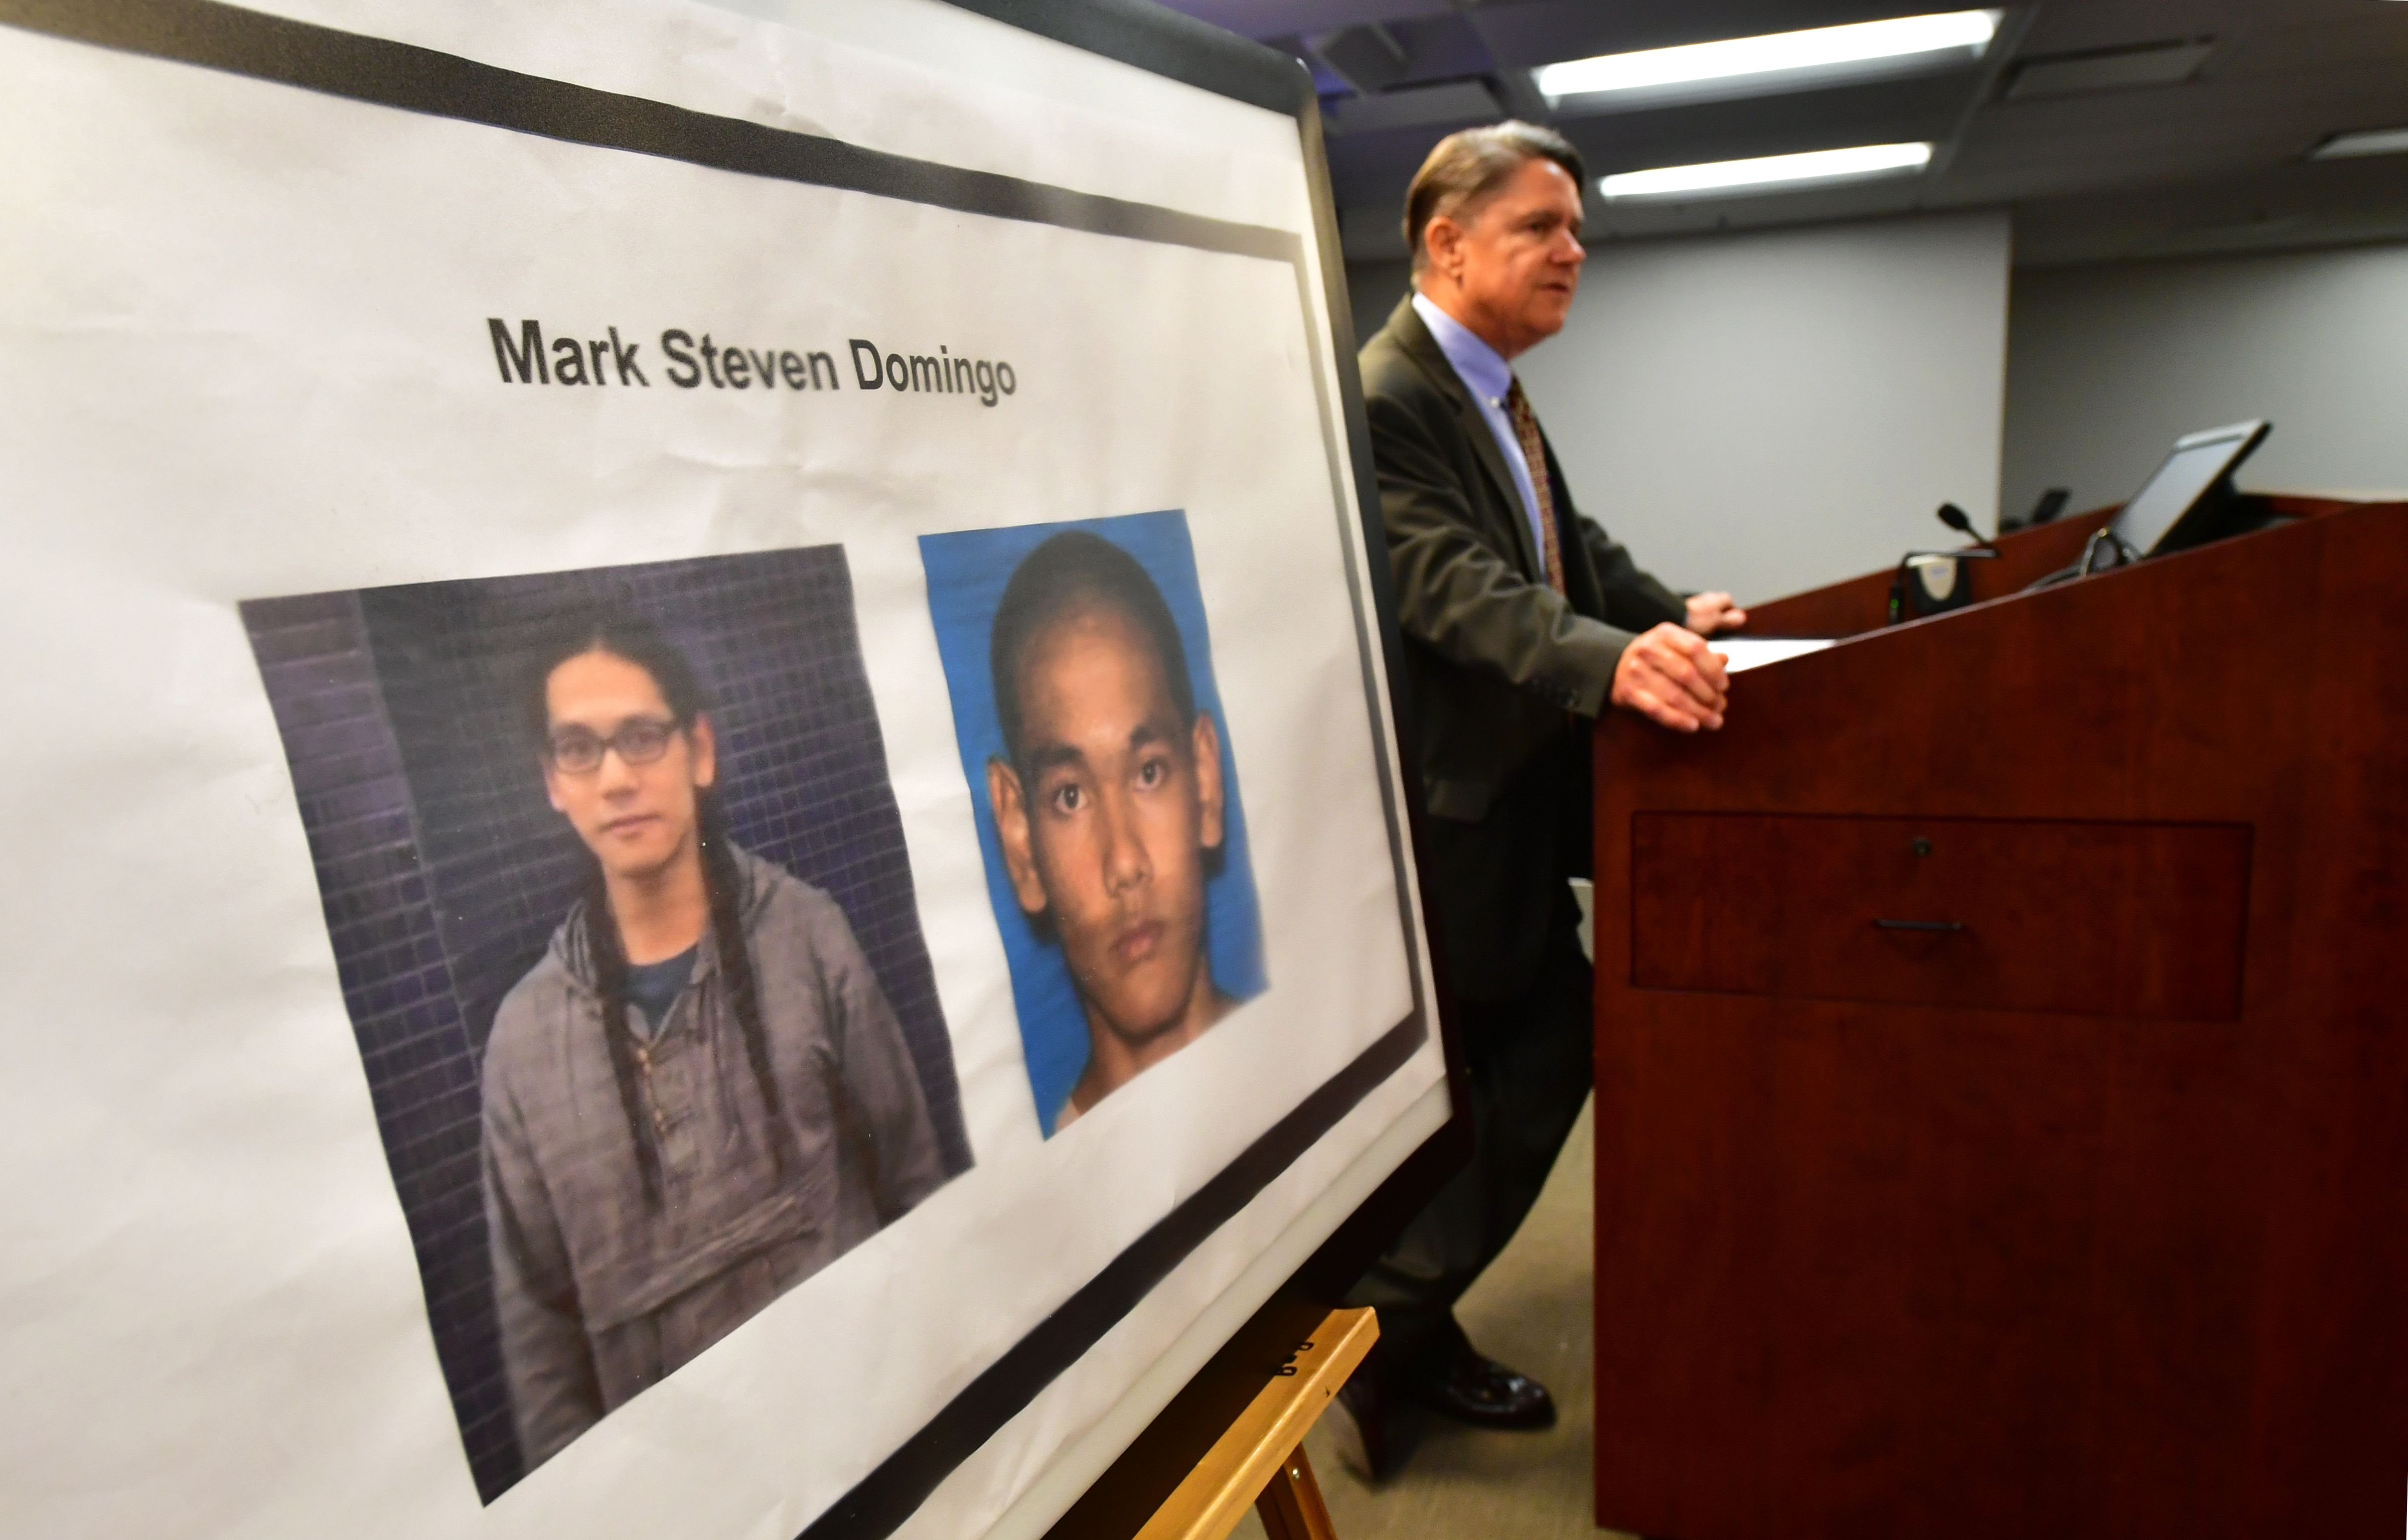 Thom Mrozek of the US Attorney's Office briefs the media beside photographs of a suspect arrested in connection with an alleged terror plot targetting Southern California sites on April 29, 2019 in Los Angeles, California where Federal and local law enforcement officials announced the results of a major counterterrorism investigation. (FREDERIC J. BROWN/AFP/Getty Images)